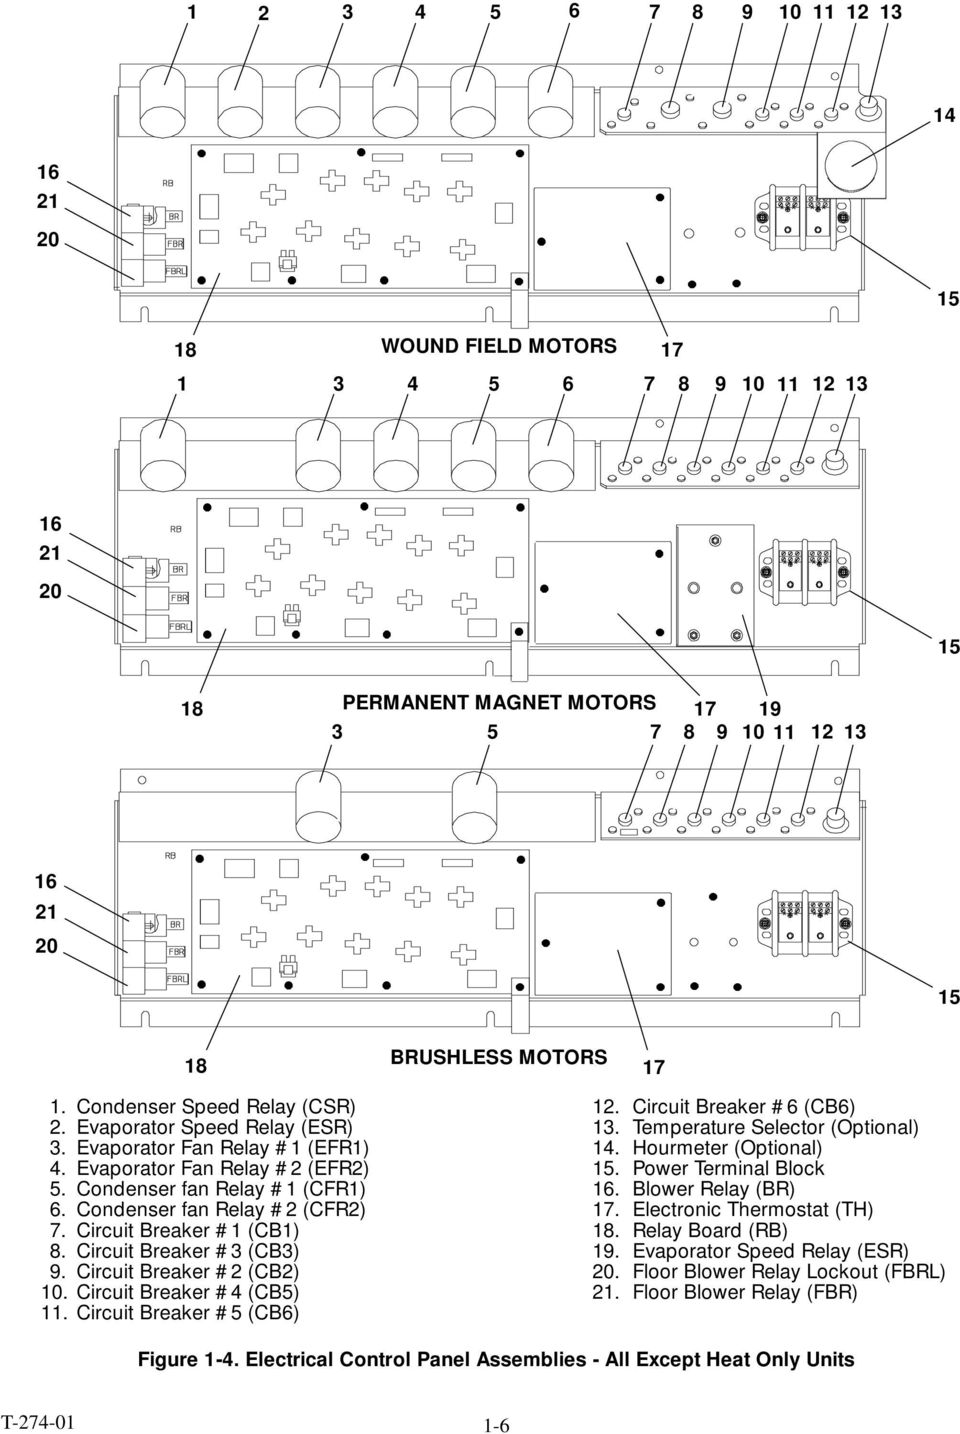 Bus Air Conditioning And Heating Unit Pdf Relay Board Schematic Evaporator Fan 2 Efr2 15 Power Terminal Block 5 Condenser